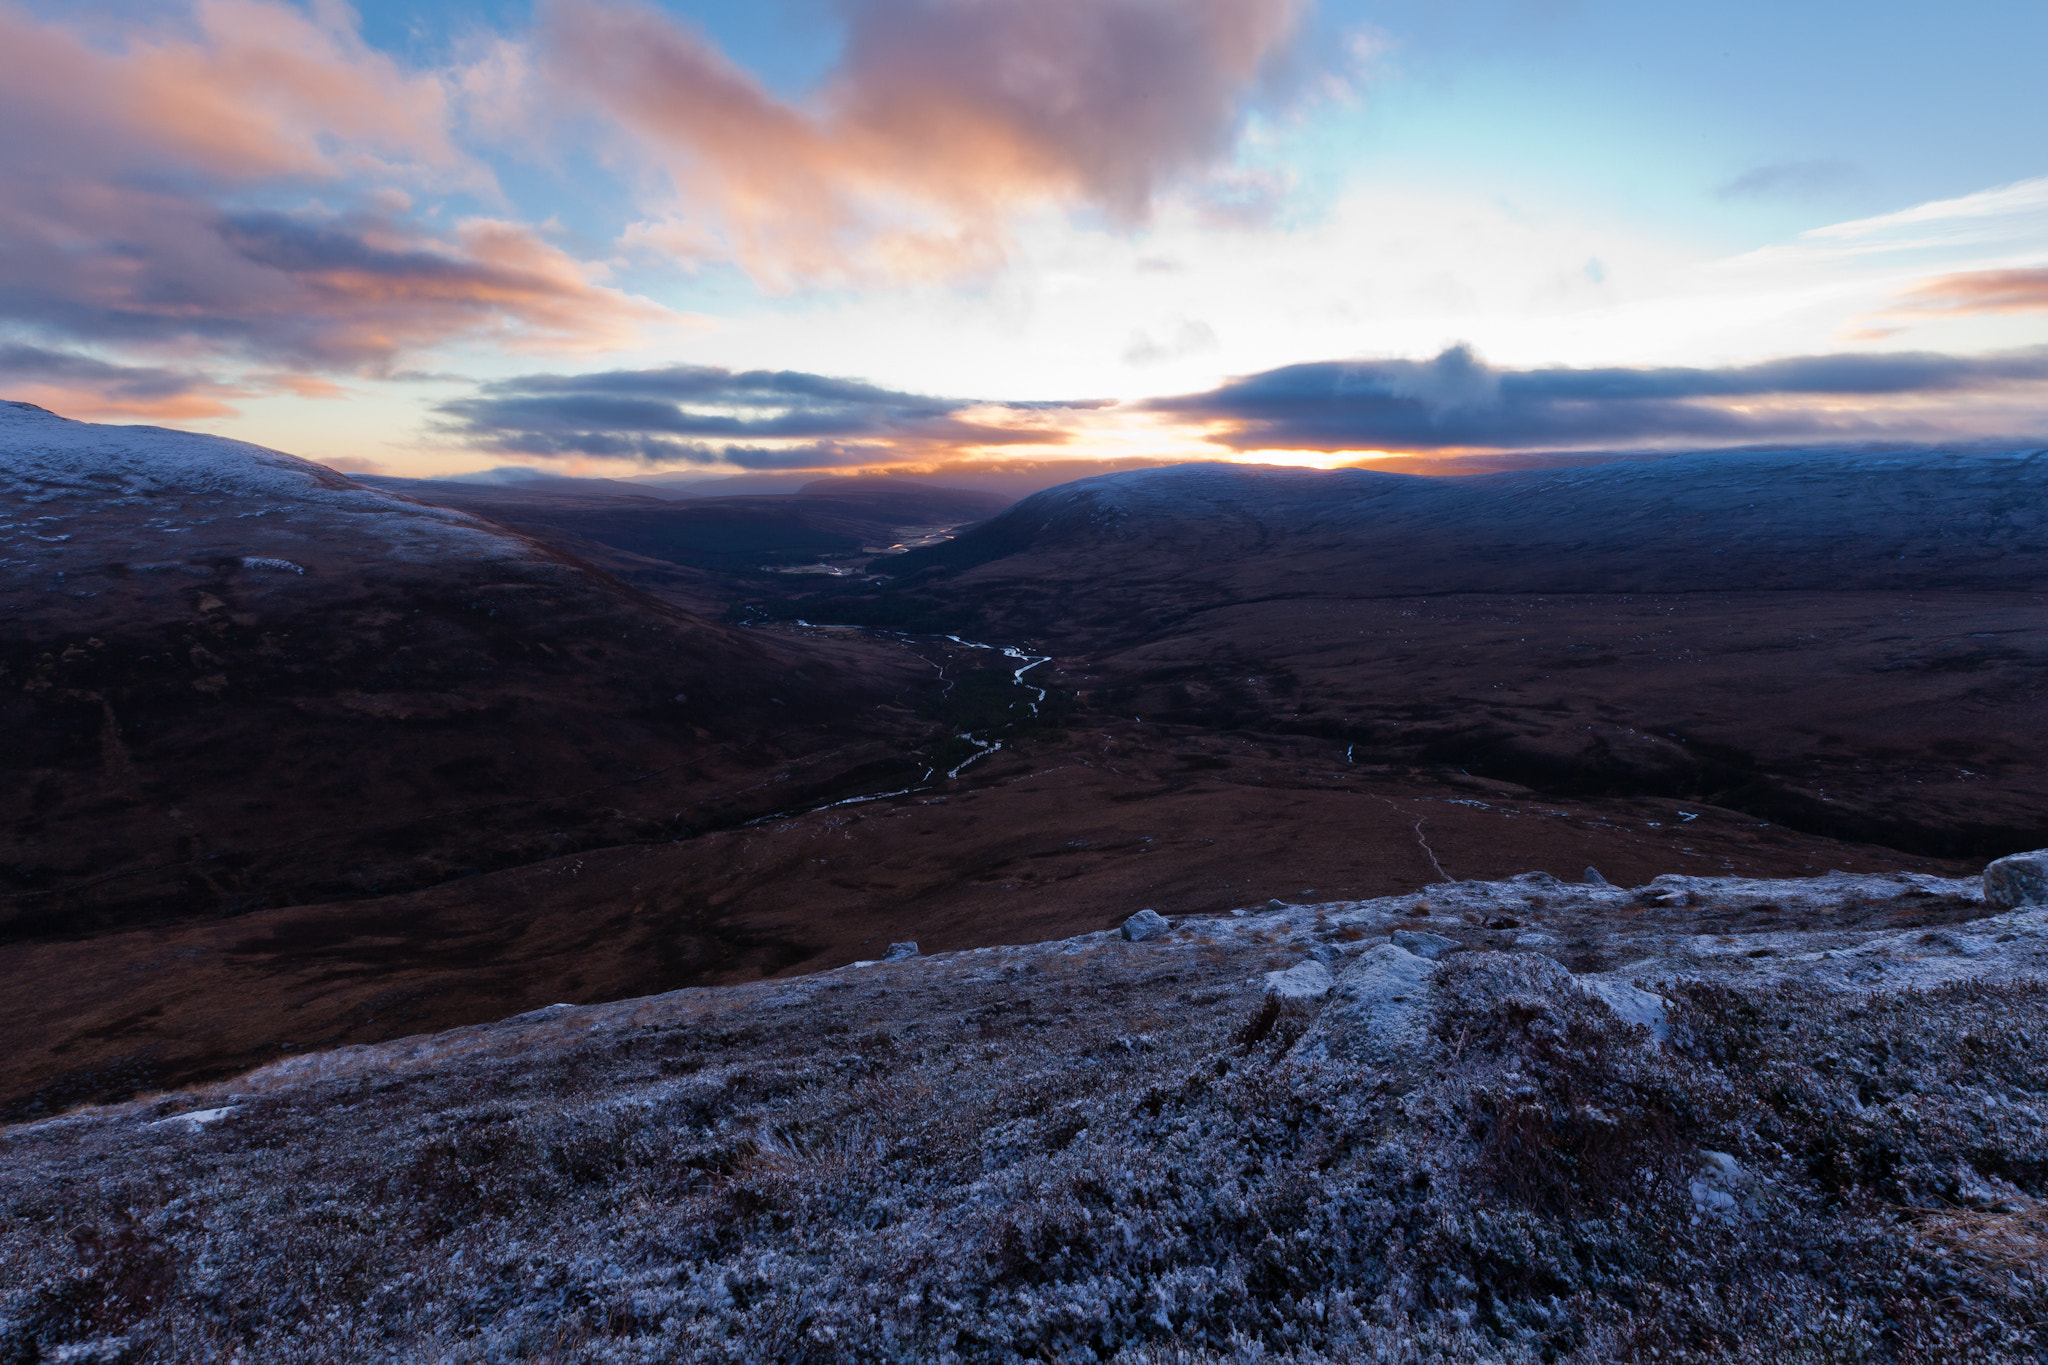 Photograph Sunrise on the Cairngorms by Matthew Hellewell on 500px